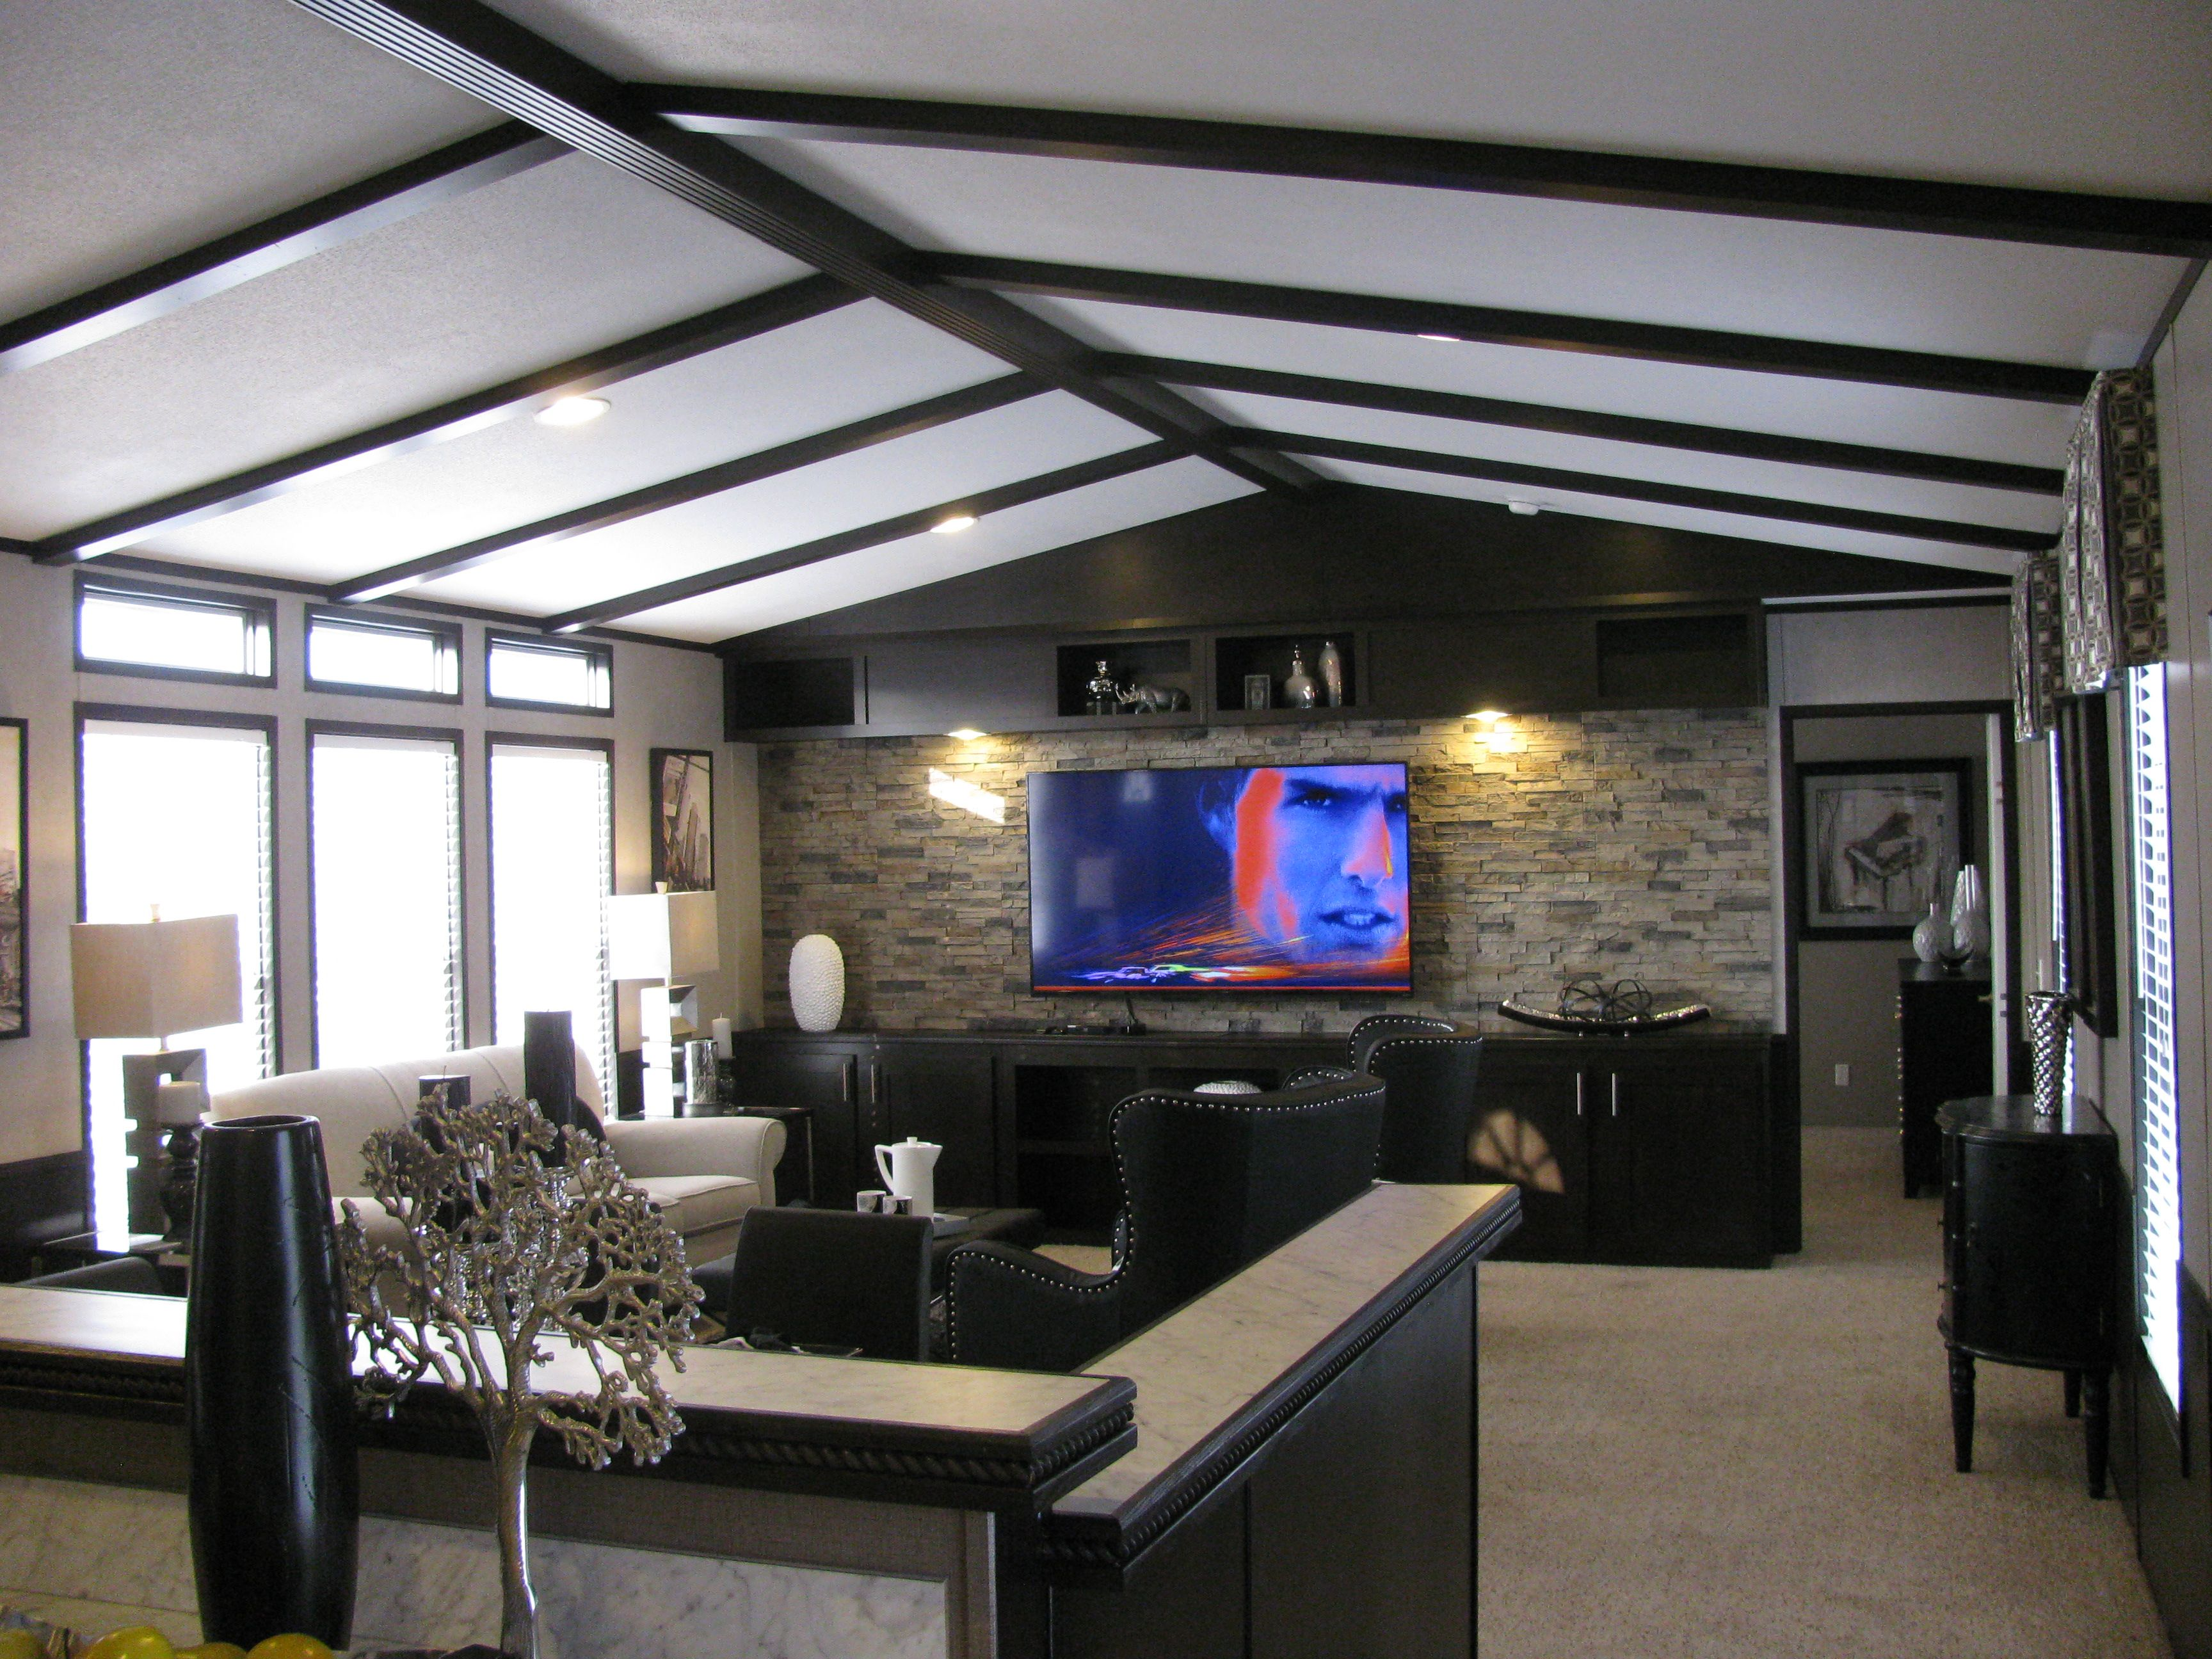 Fishbone Ceiling With Rock Entertainment Center